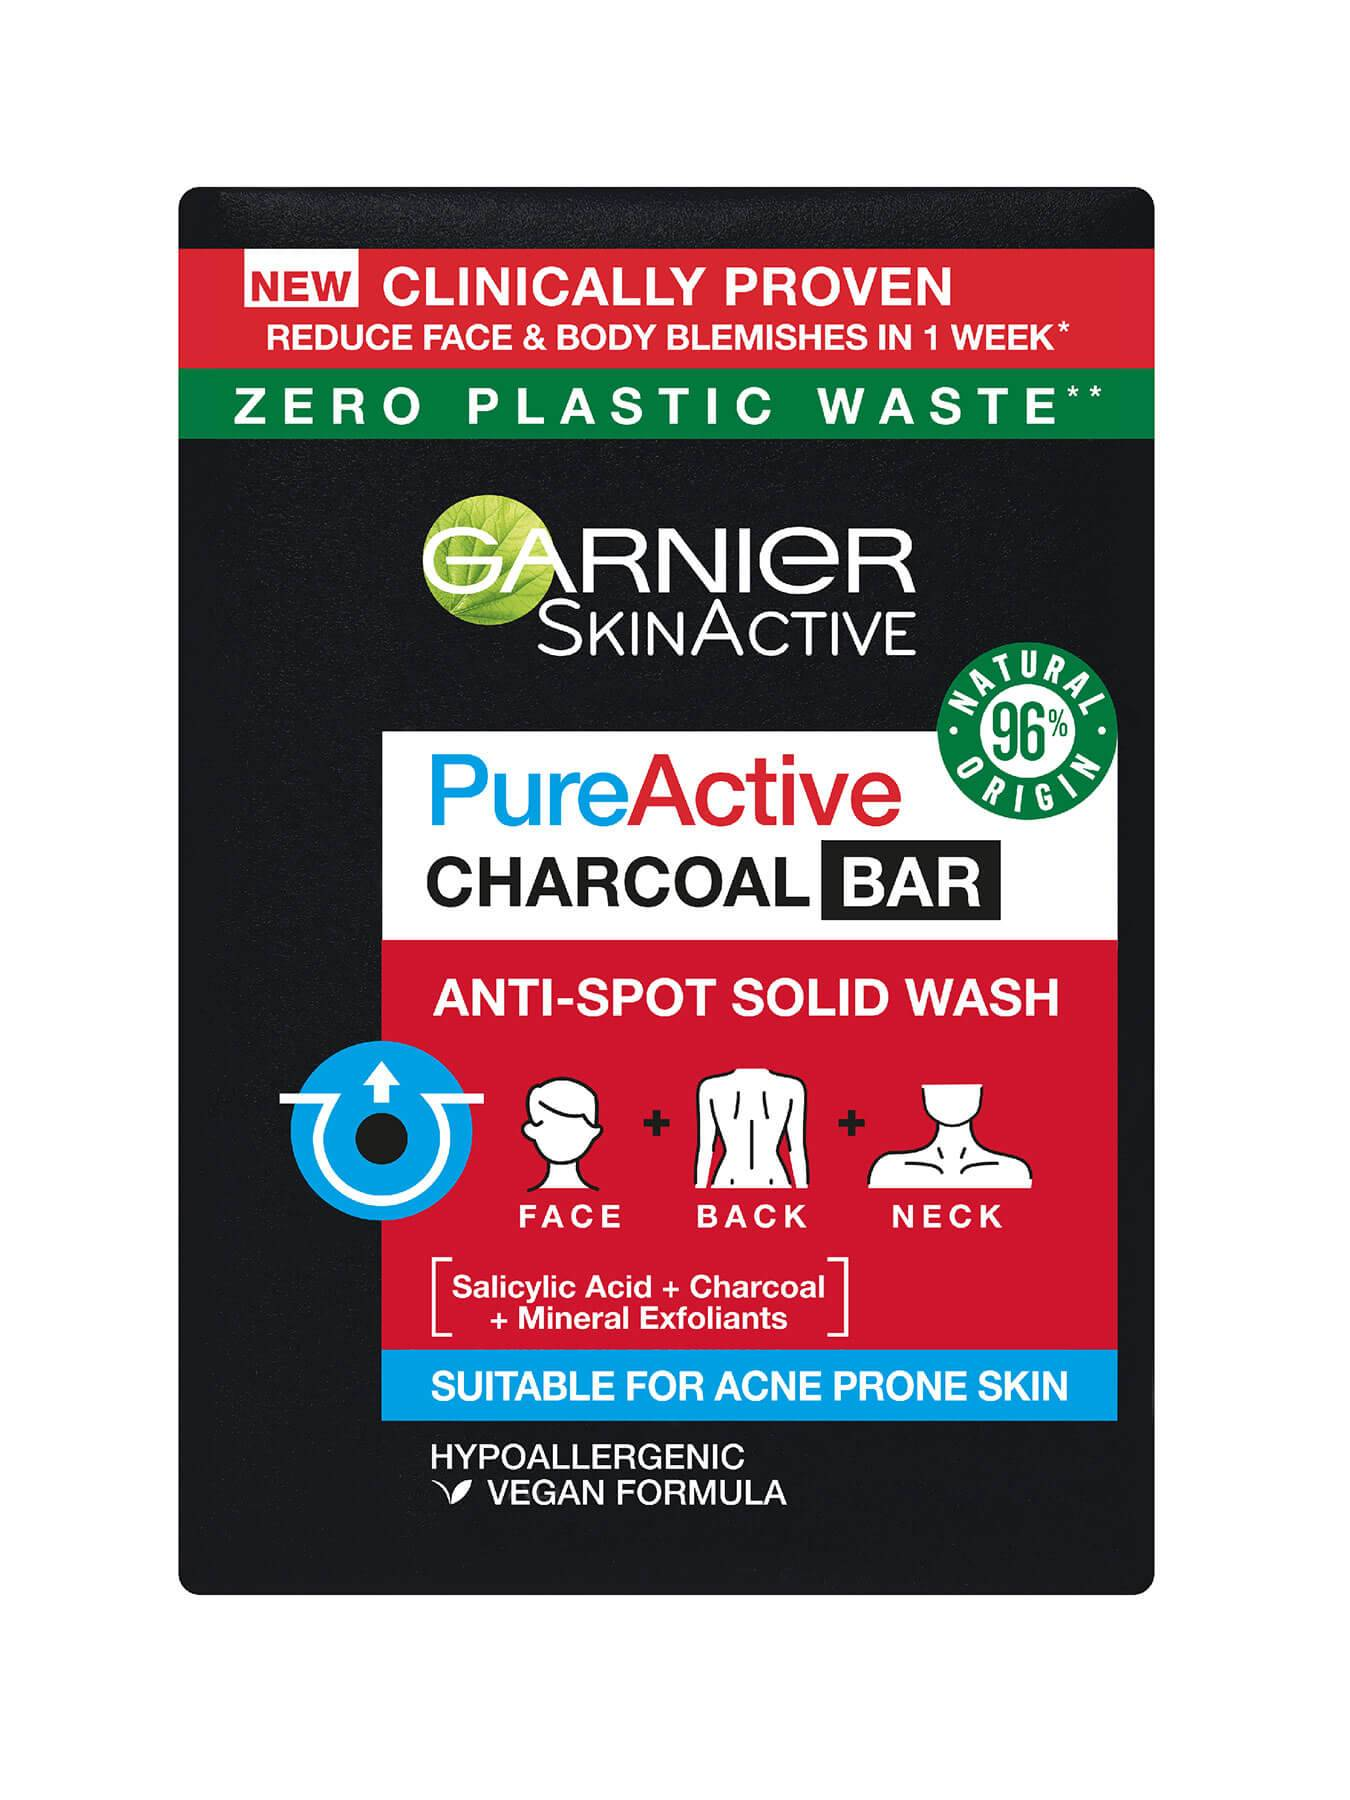 Garnier Pure Active Charcoal Bar Front of Pack